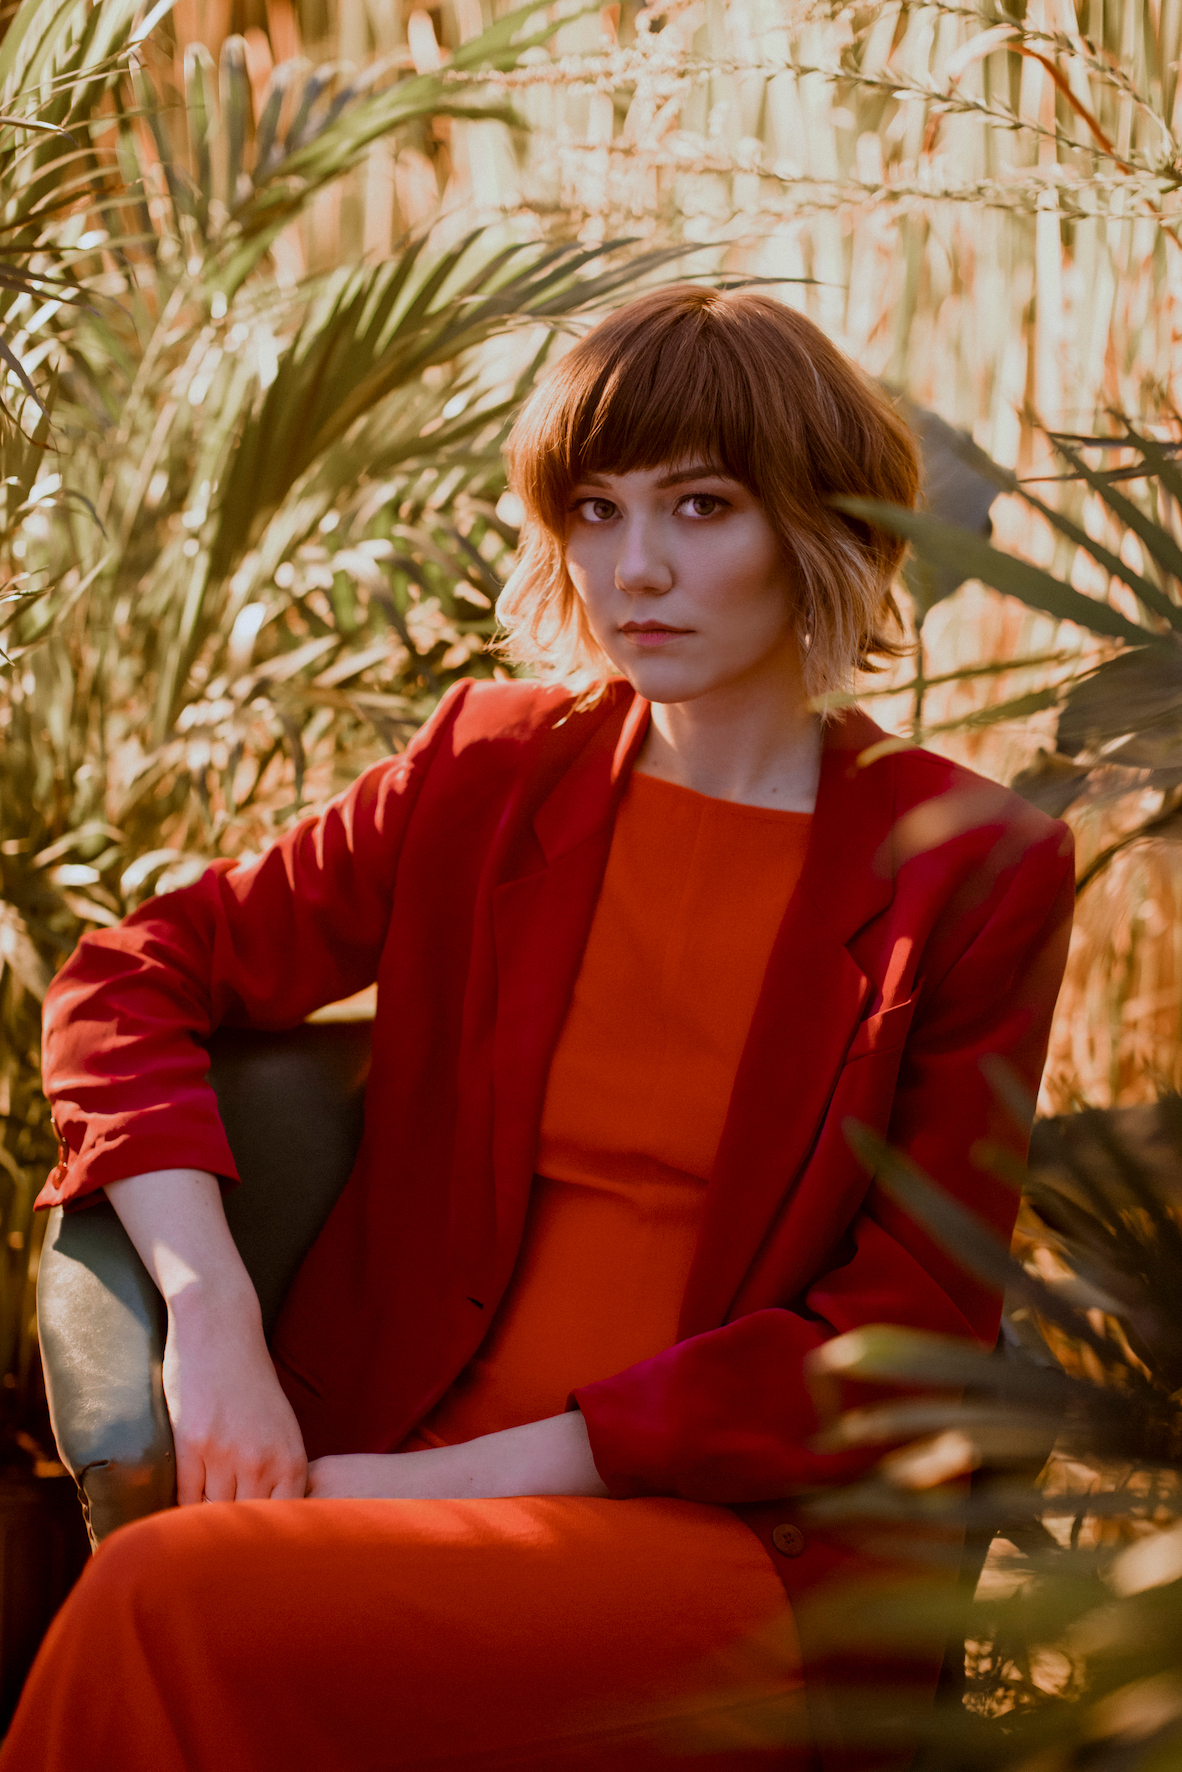 Molly Tuttle confirmed for Take Root Festival and Paradiso show